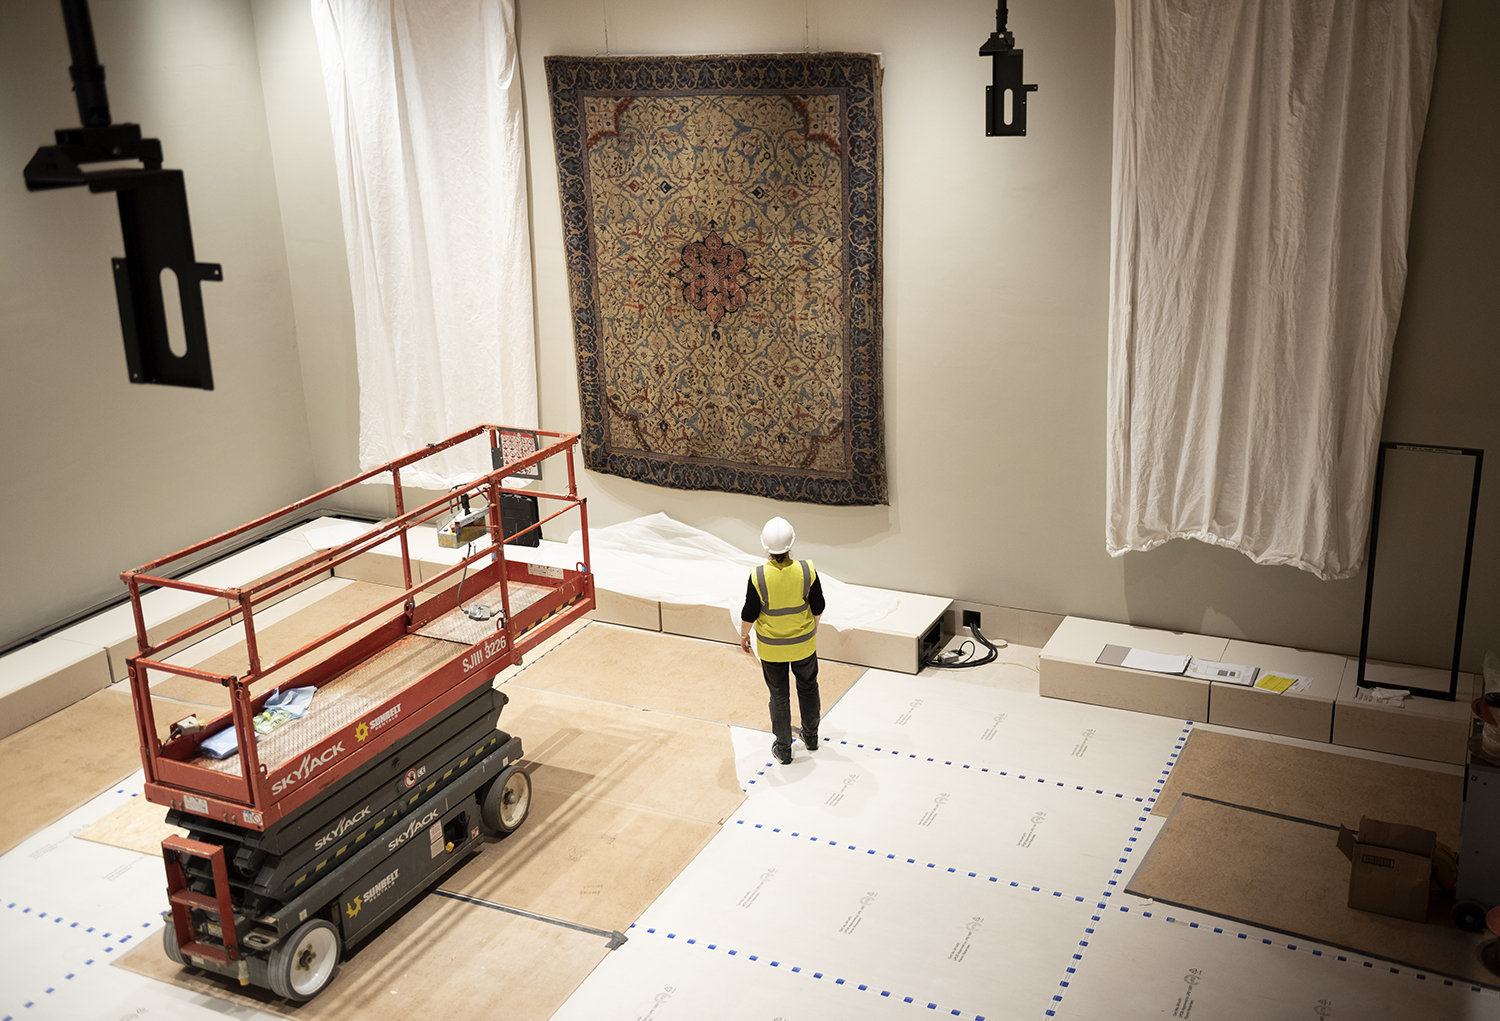 The Burrell Collection Arabesque Carpet install complete.